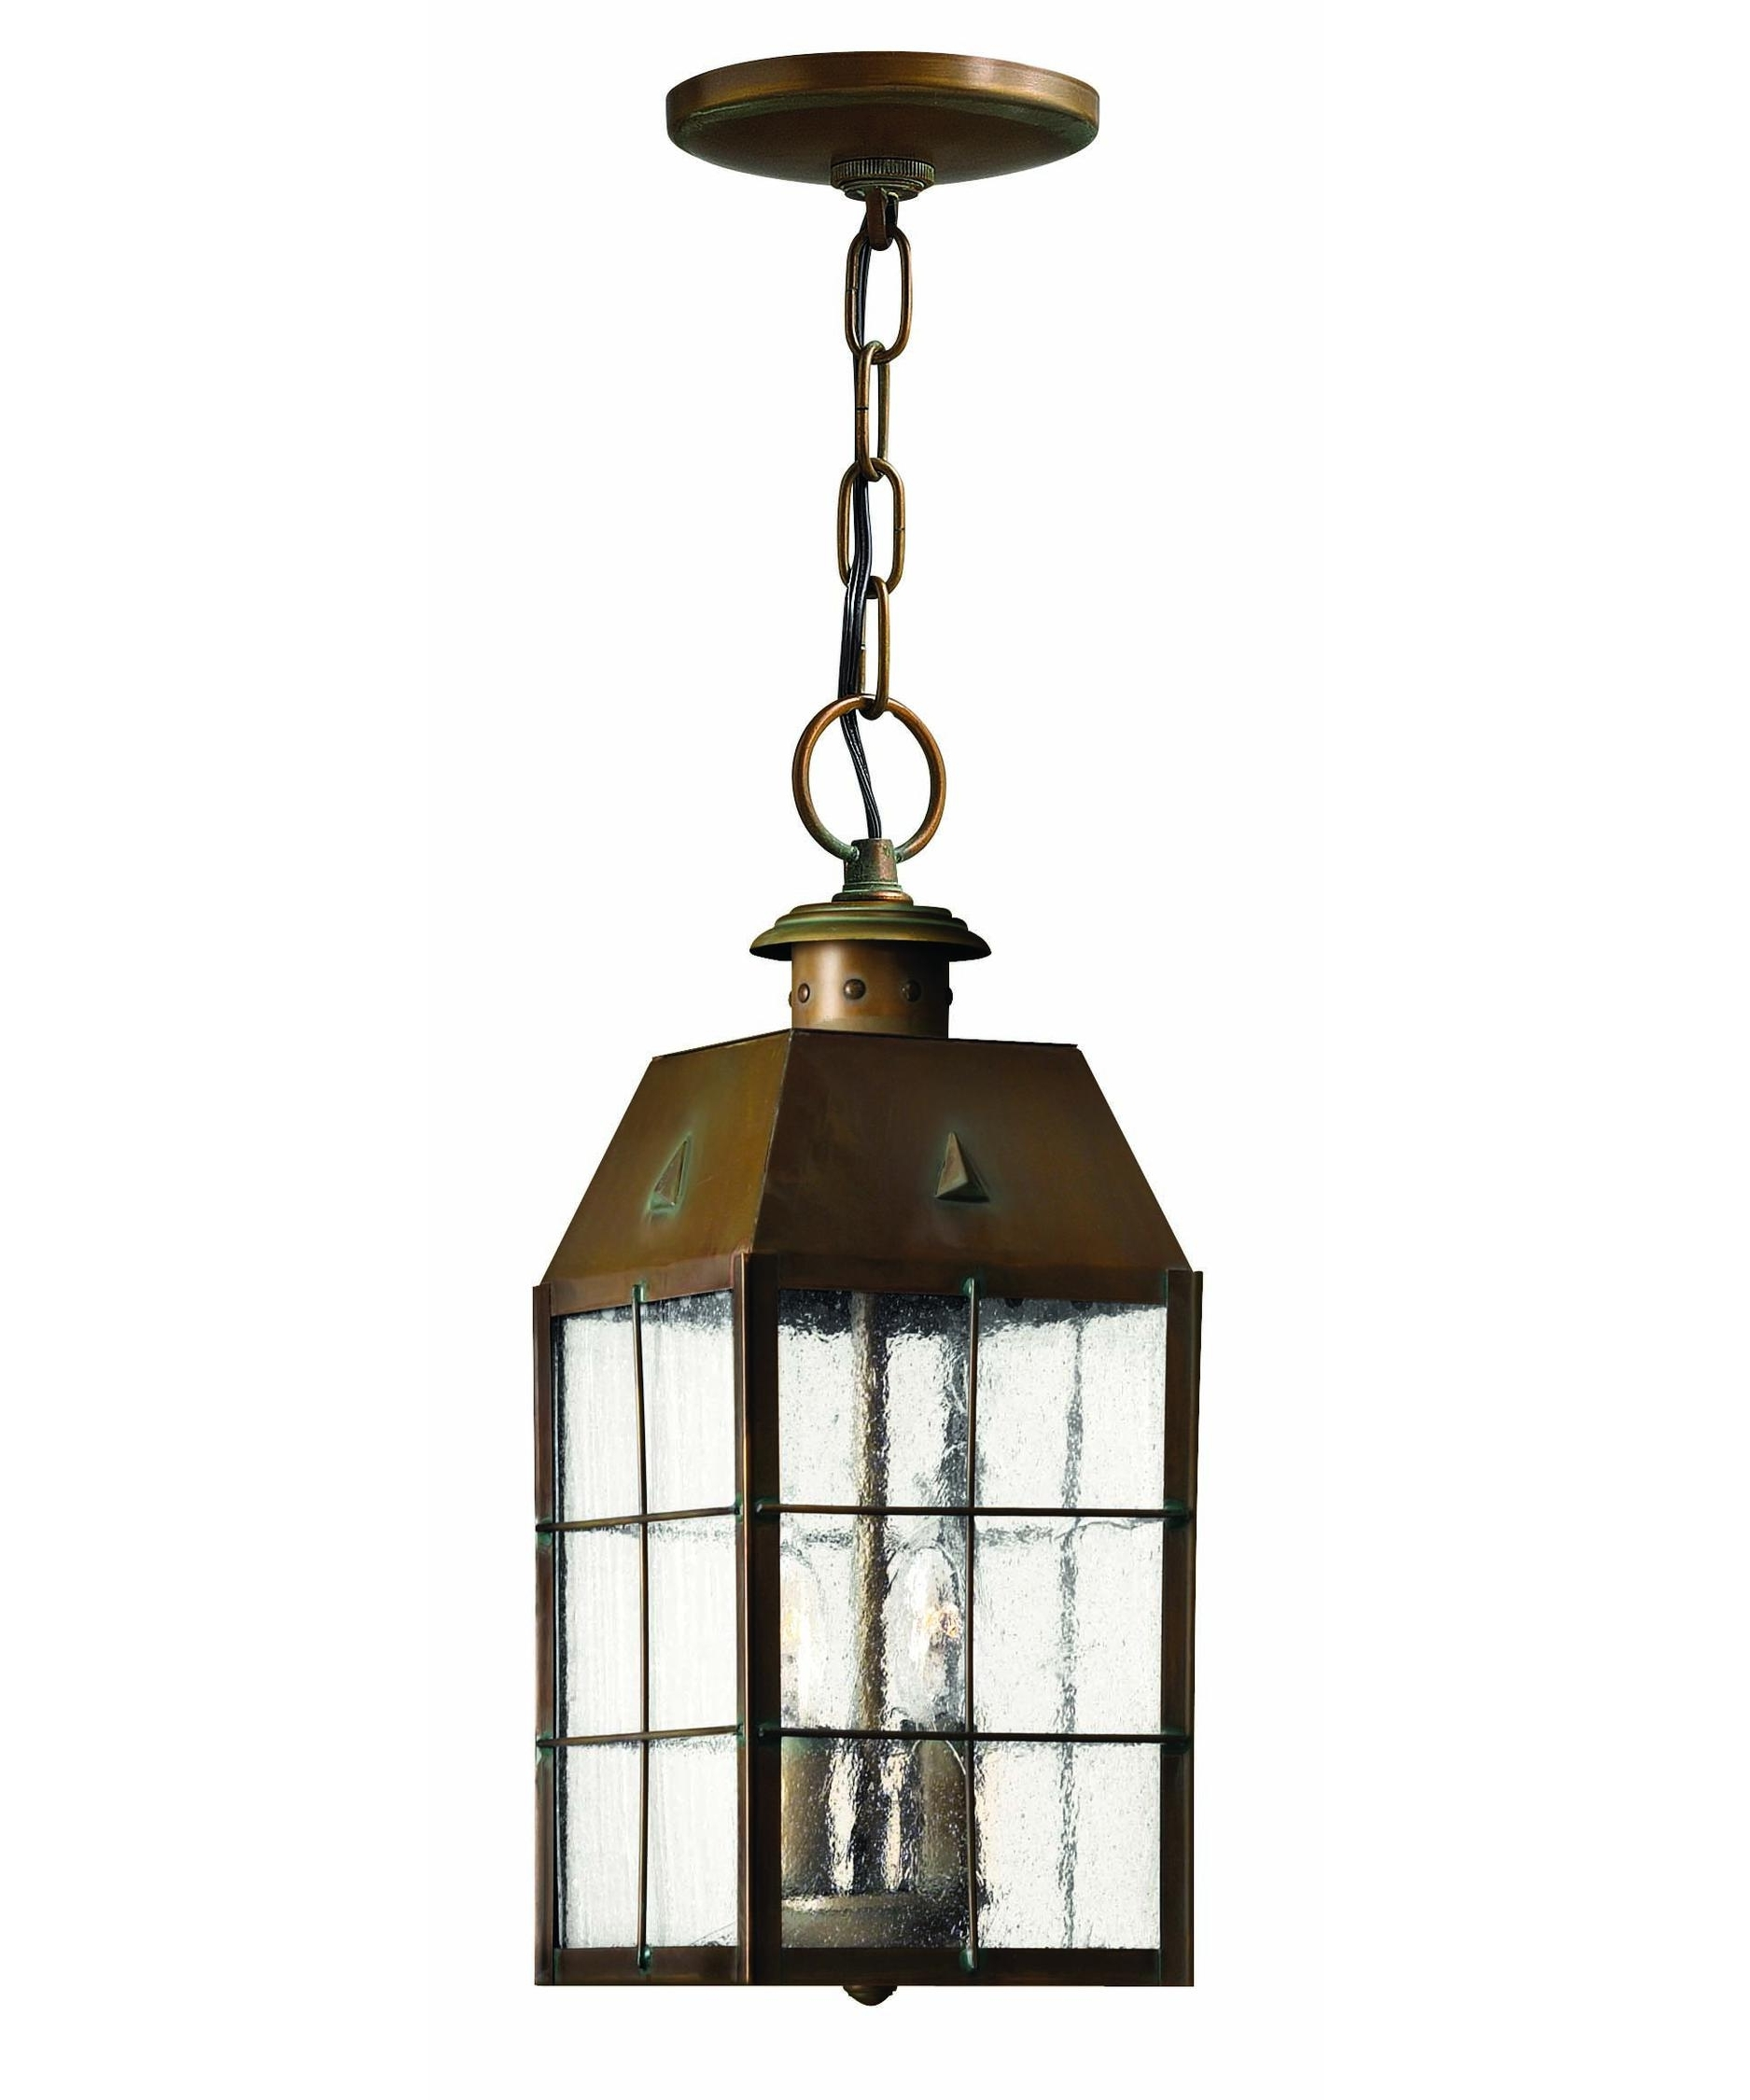 Hanging Porch Light Oil Rubbed Bronze Outdoor Lights Houzz 12 For Newest Houzz Outdoor Hanging Lights (Gallery 4 of 20)